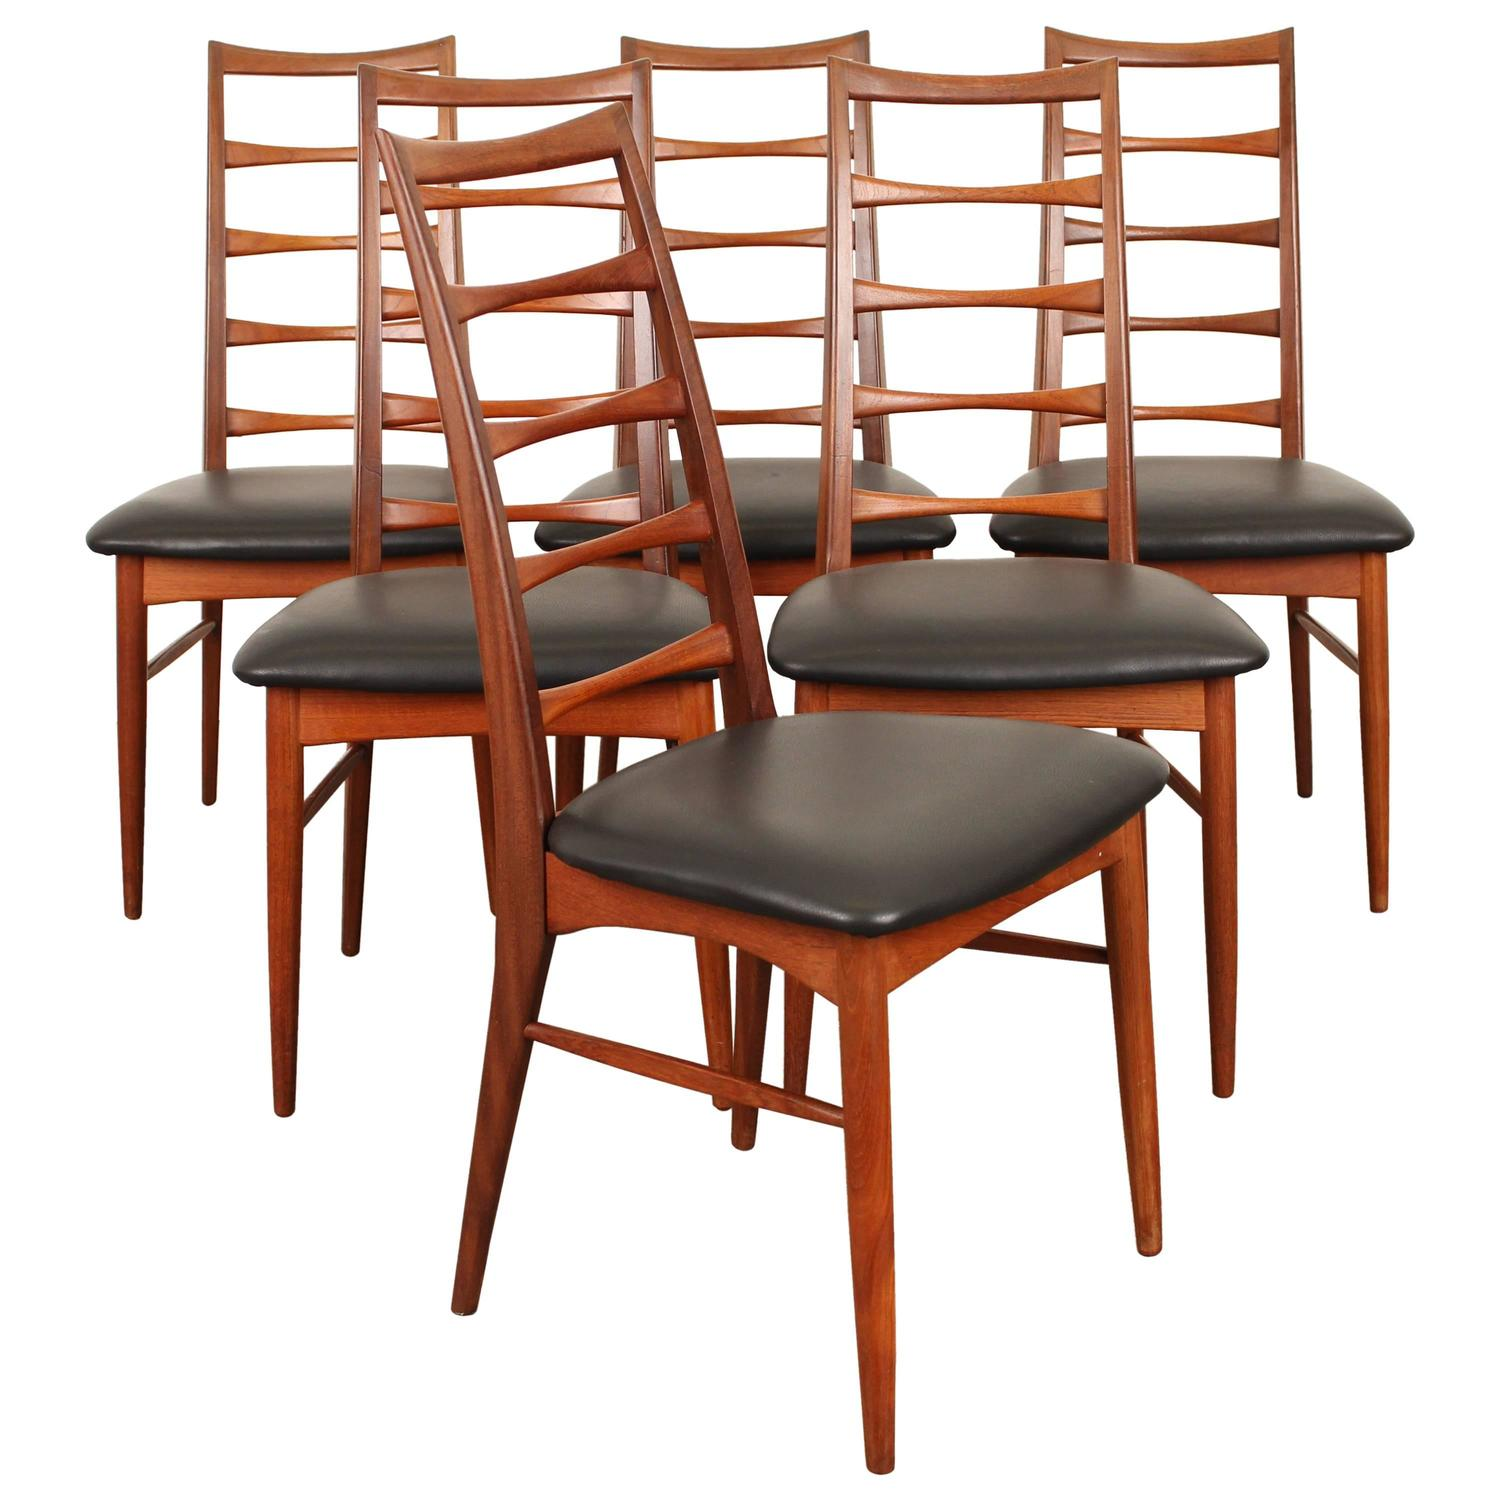 set of six tall ladder back teak and leather dining chairs by niels kofoed for sale at 1stdibs. Black Bedroom Furniture Sets. Home Design Ideas